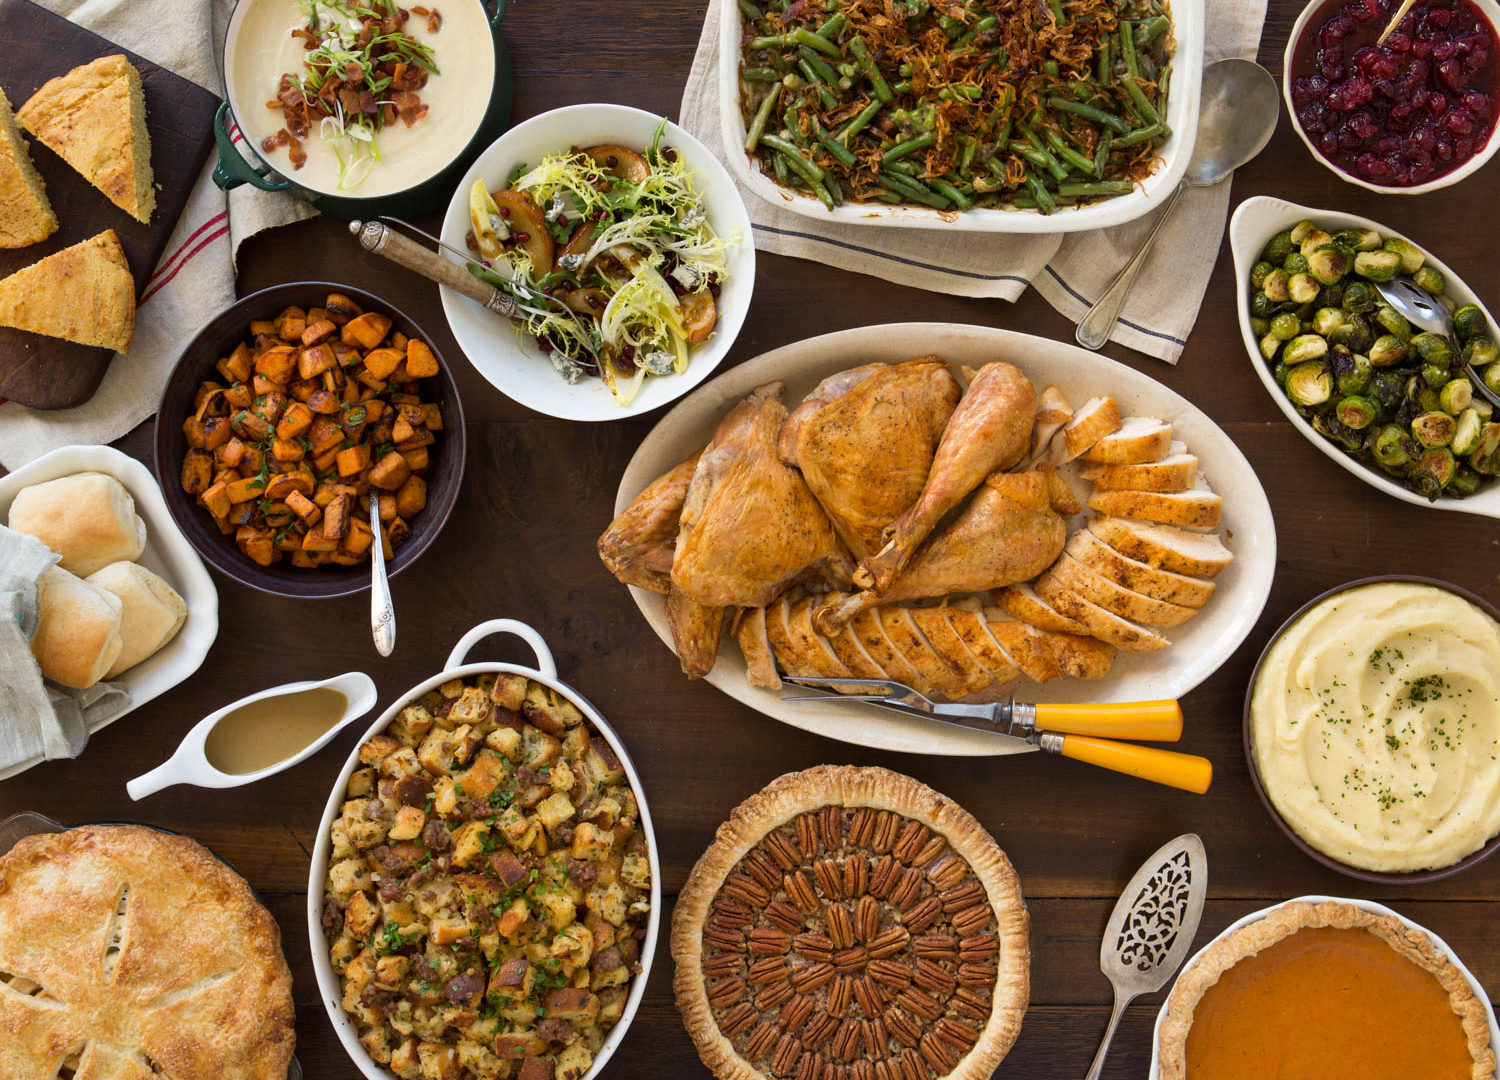 Your Favorite Thanksgiving Dish Says a Lot About Your Personality